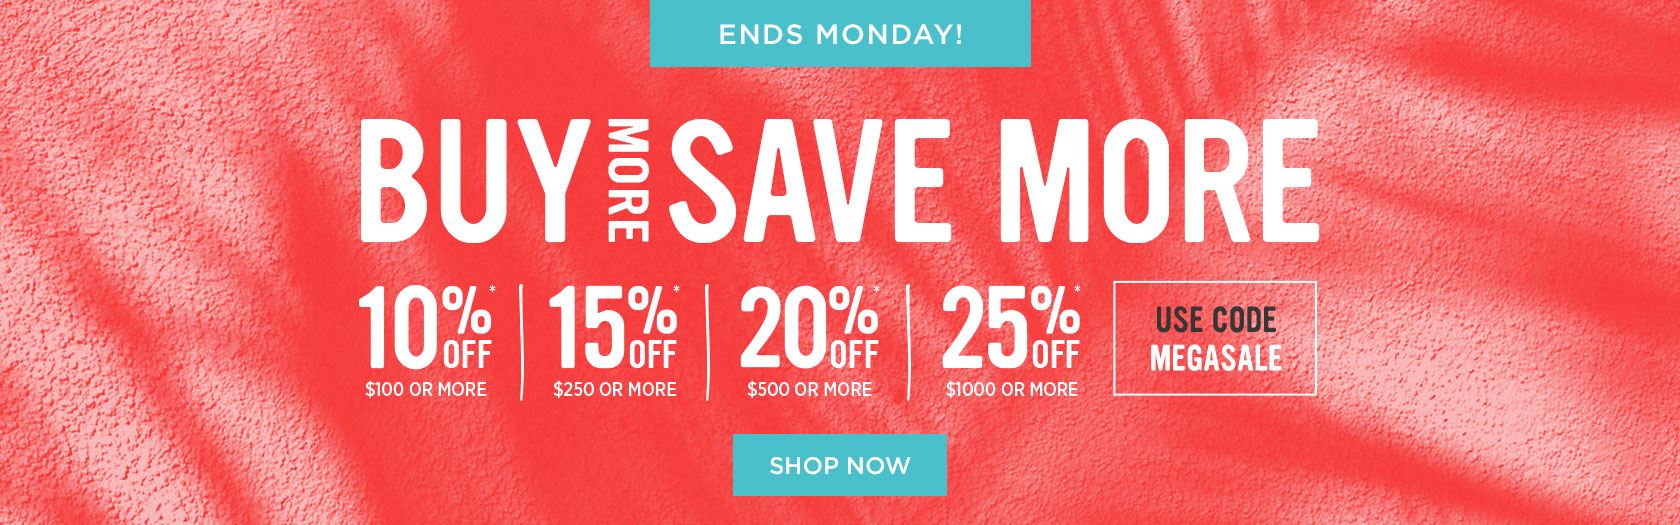 Buy More Save More - Use Code MEGASALE